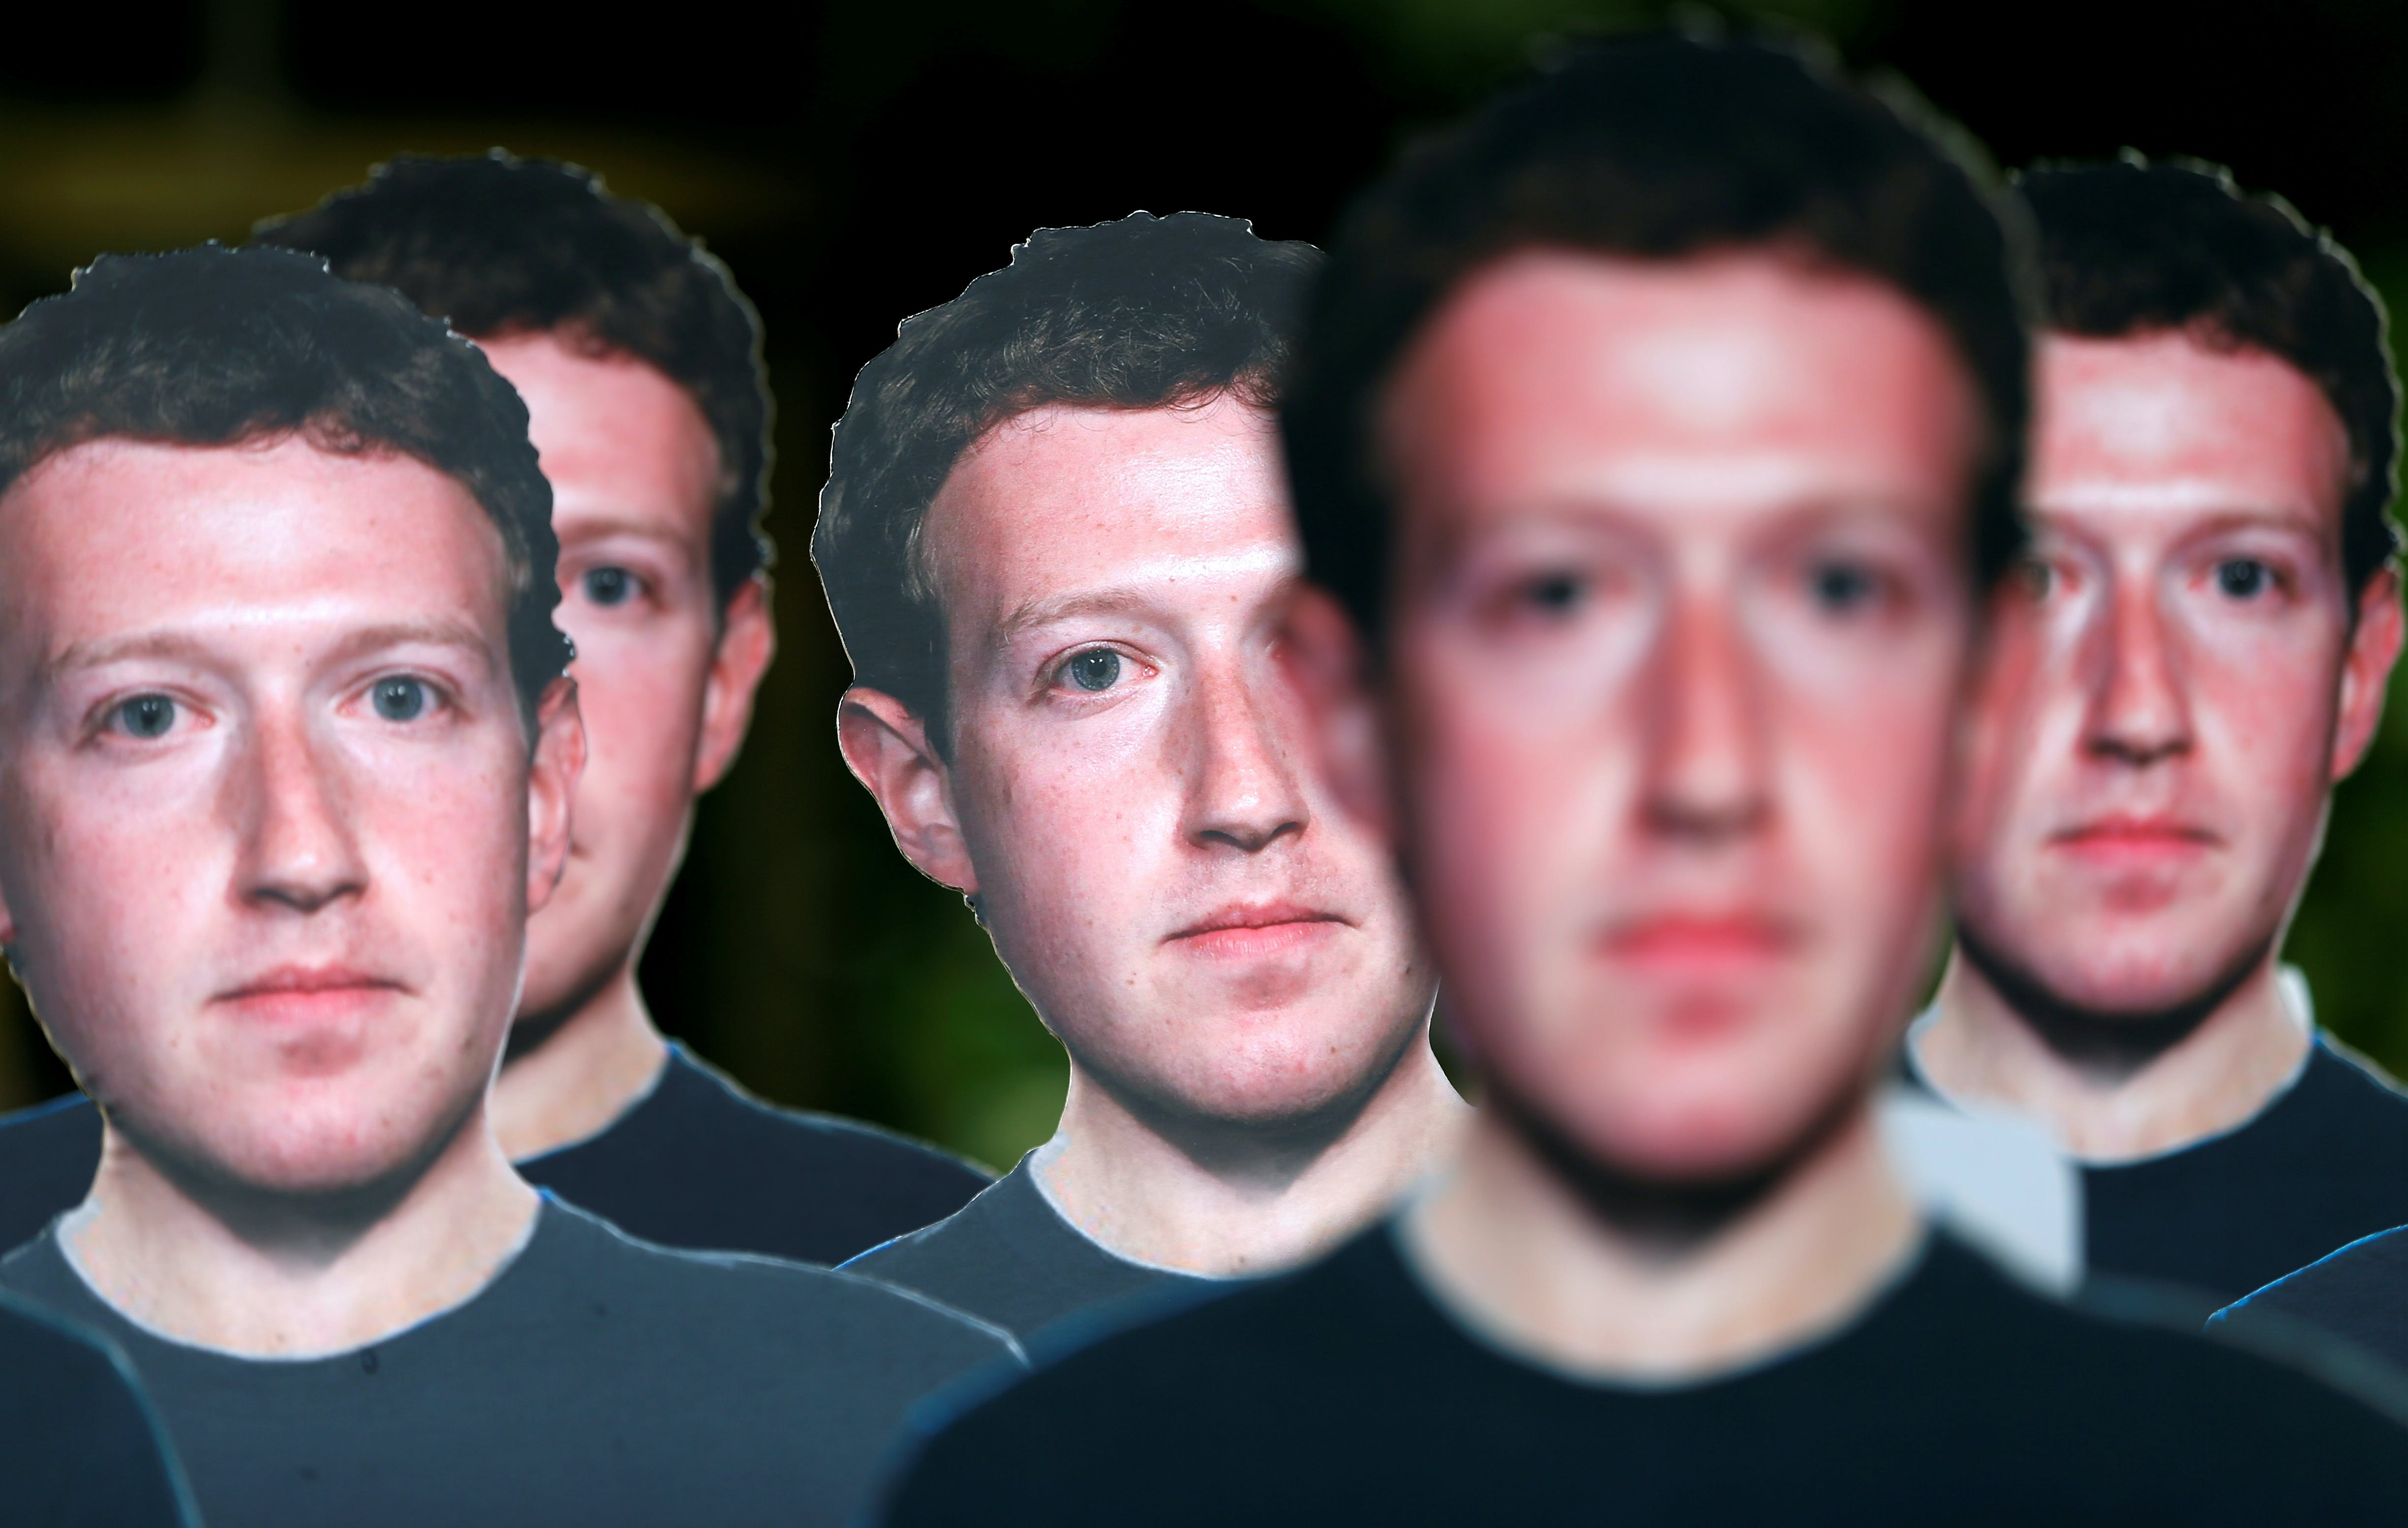 Cardboard cutouts depicting Facebook CEO Mark Zuckerberg are pictured during a demonstration ahead of a meeting between Zuckerberg and leaders of the European Parliament in Brussels, Belgium May 22, 2018. REUTERS/Francois Lenoir     TPX IMAGES OF THE DAY - RC128CC39F90